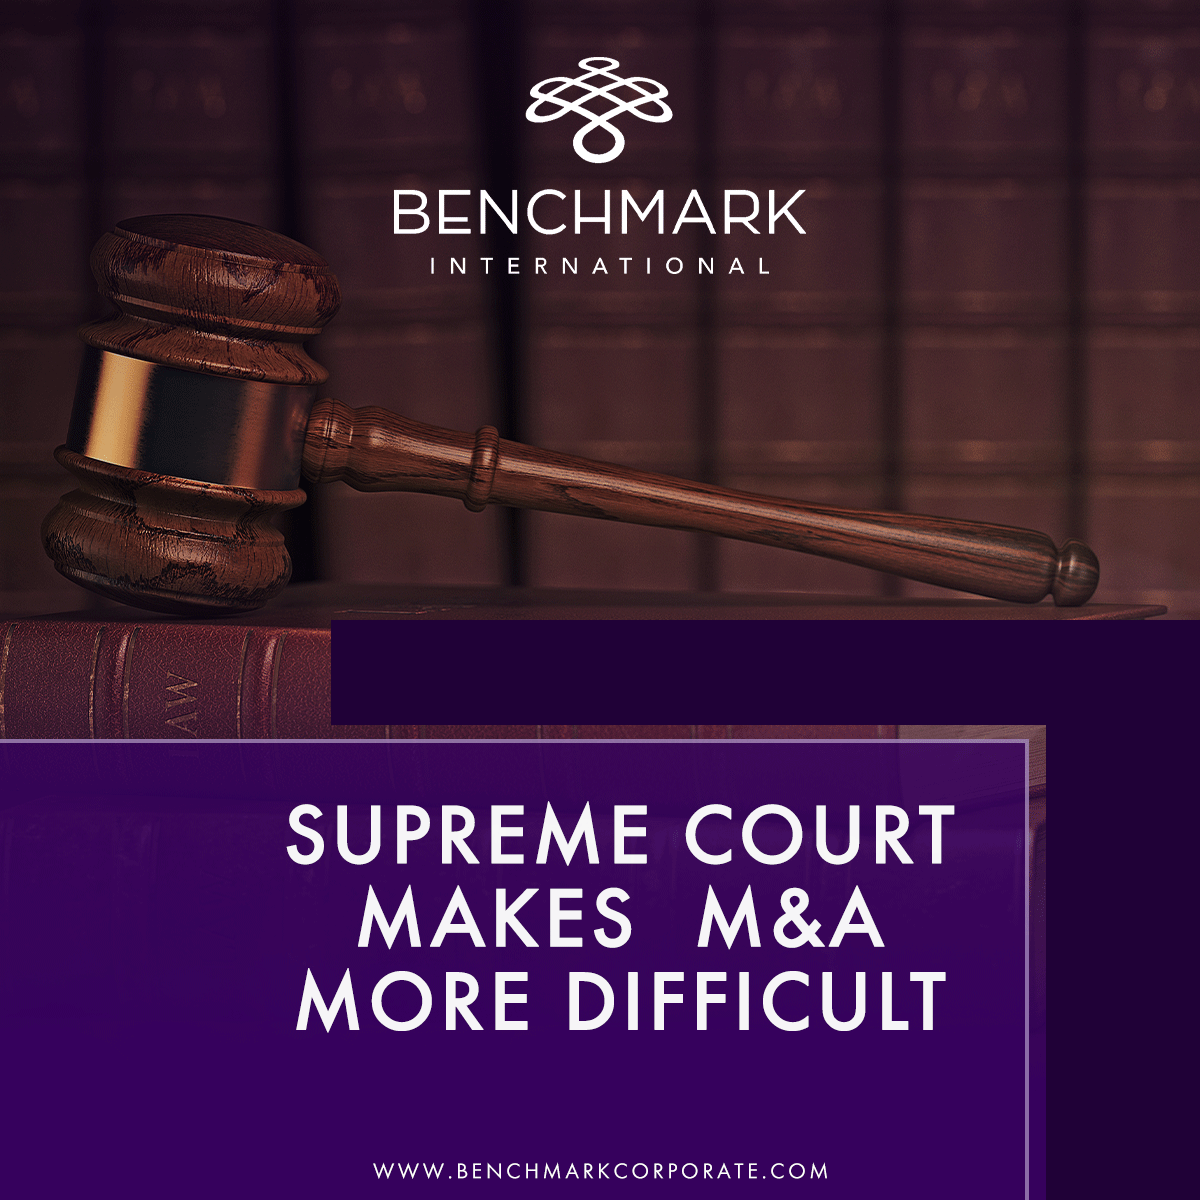 Benchmark International Supreme Court Makes M&A Mergers and Acquisitions More Difficult